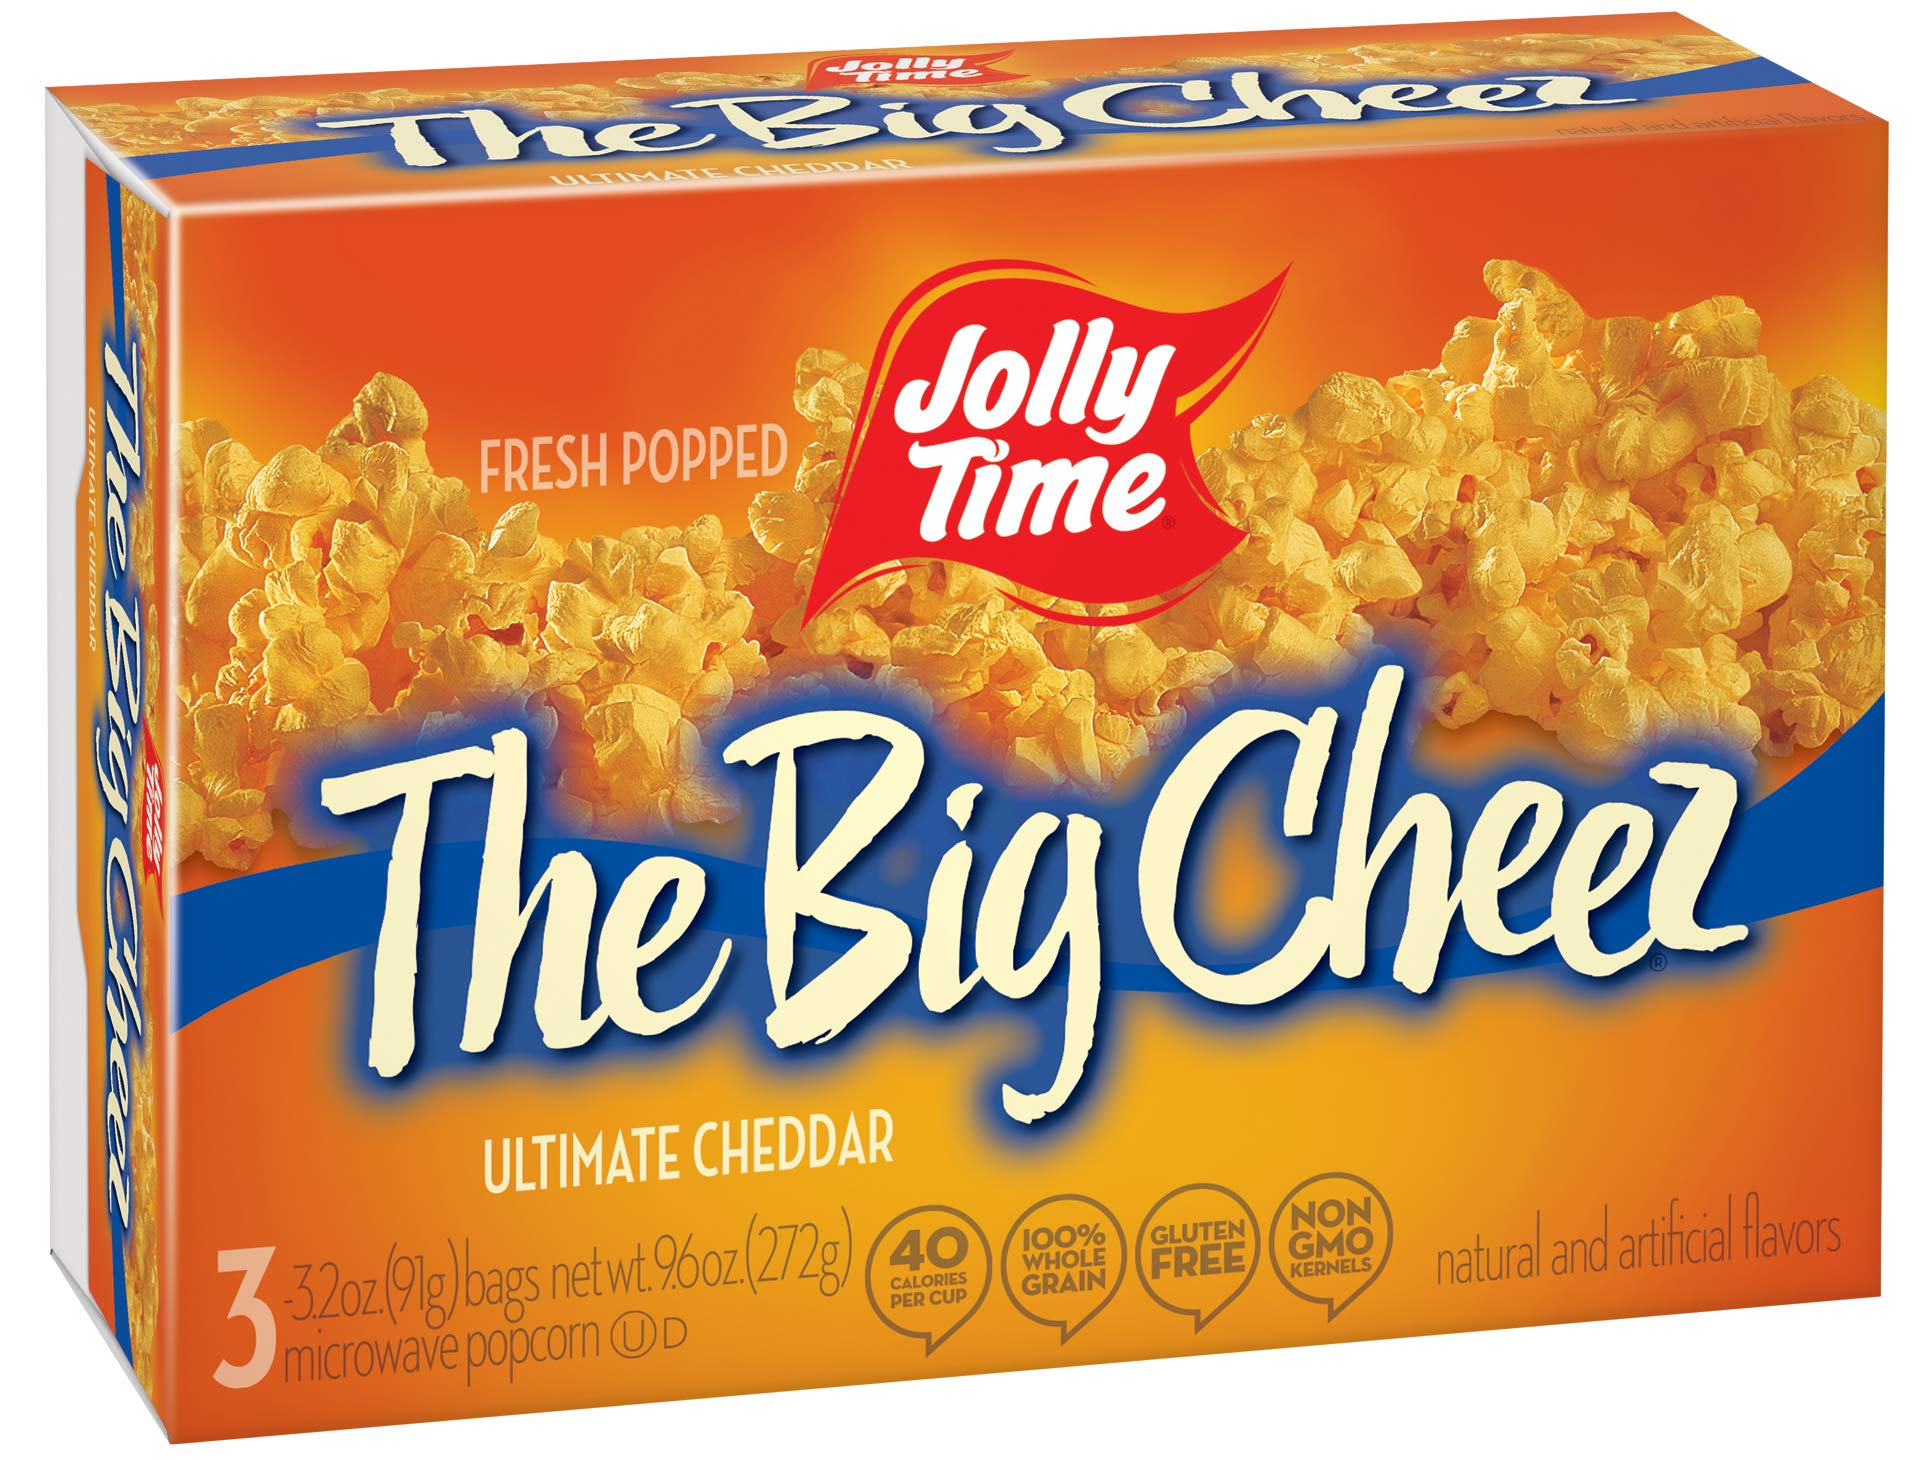 Jolly Time The Big Cheez Cheddar Cheese Microwave Popcorn, 3 Count (Pack of 12) by Jolly Time